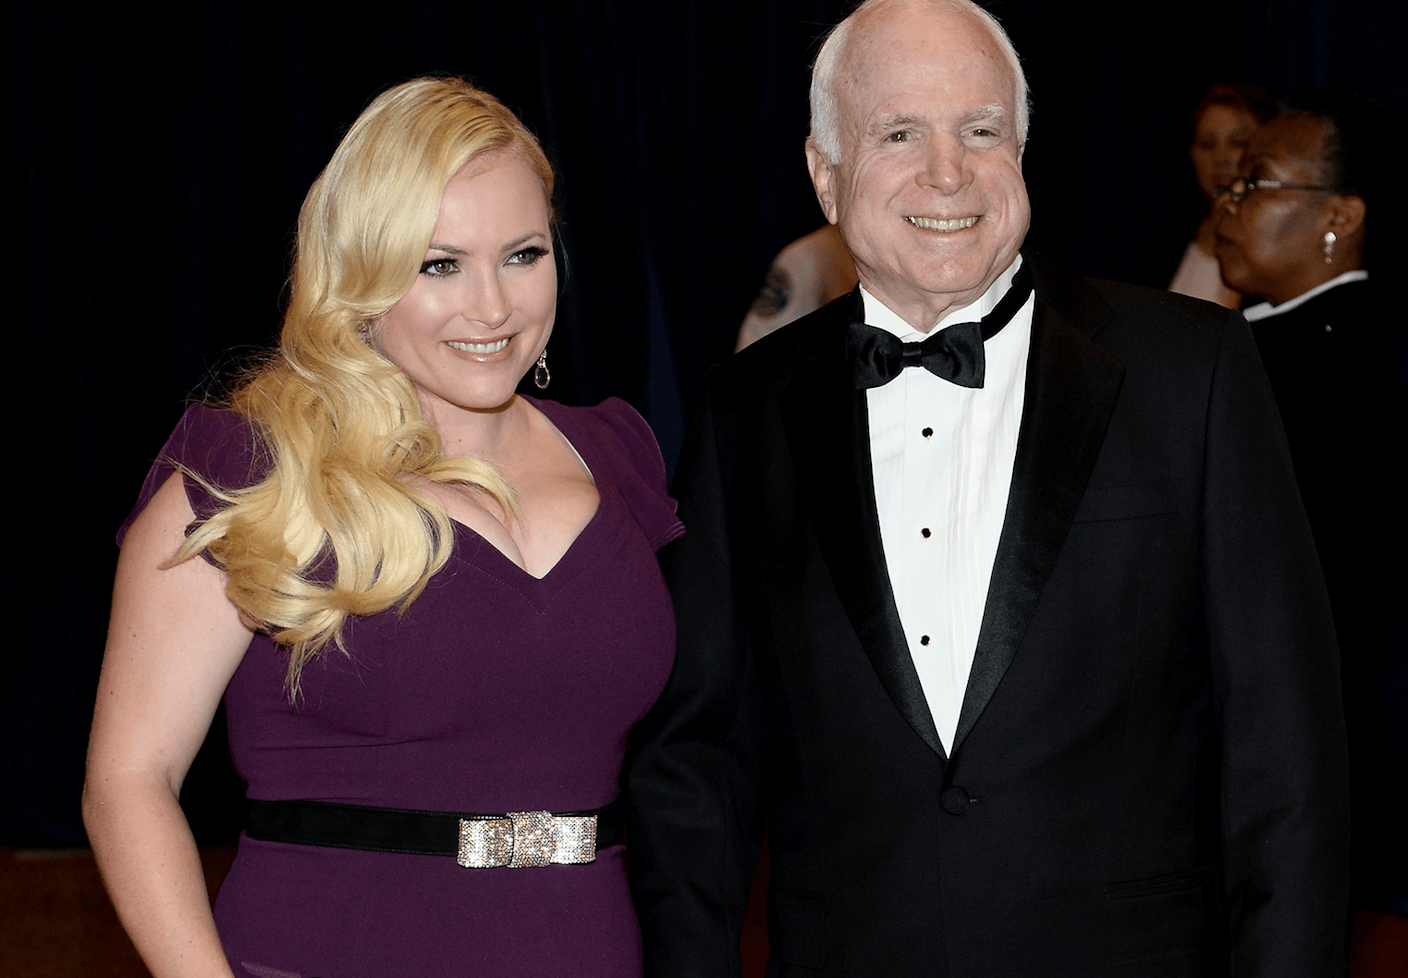 John McCain and Meghan